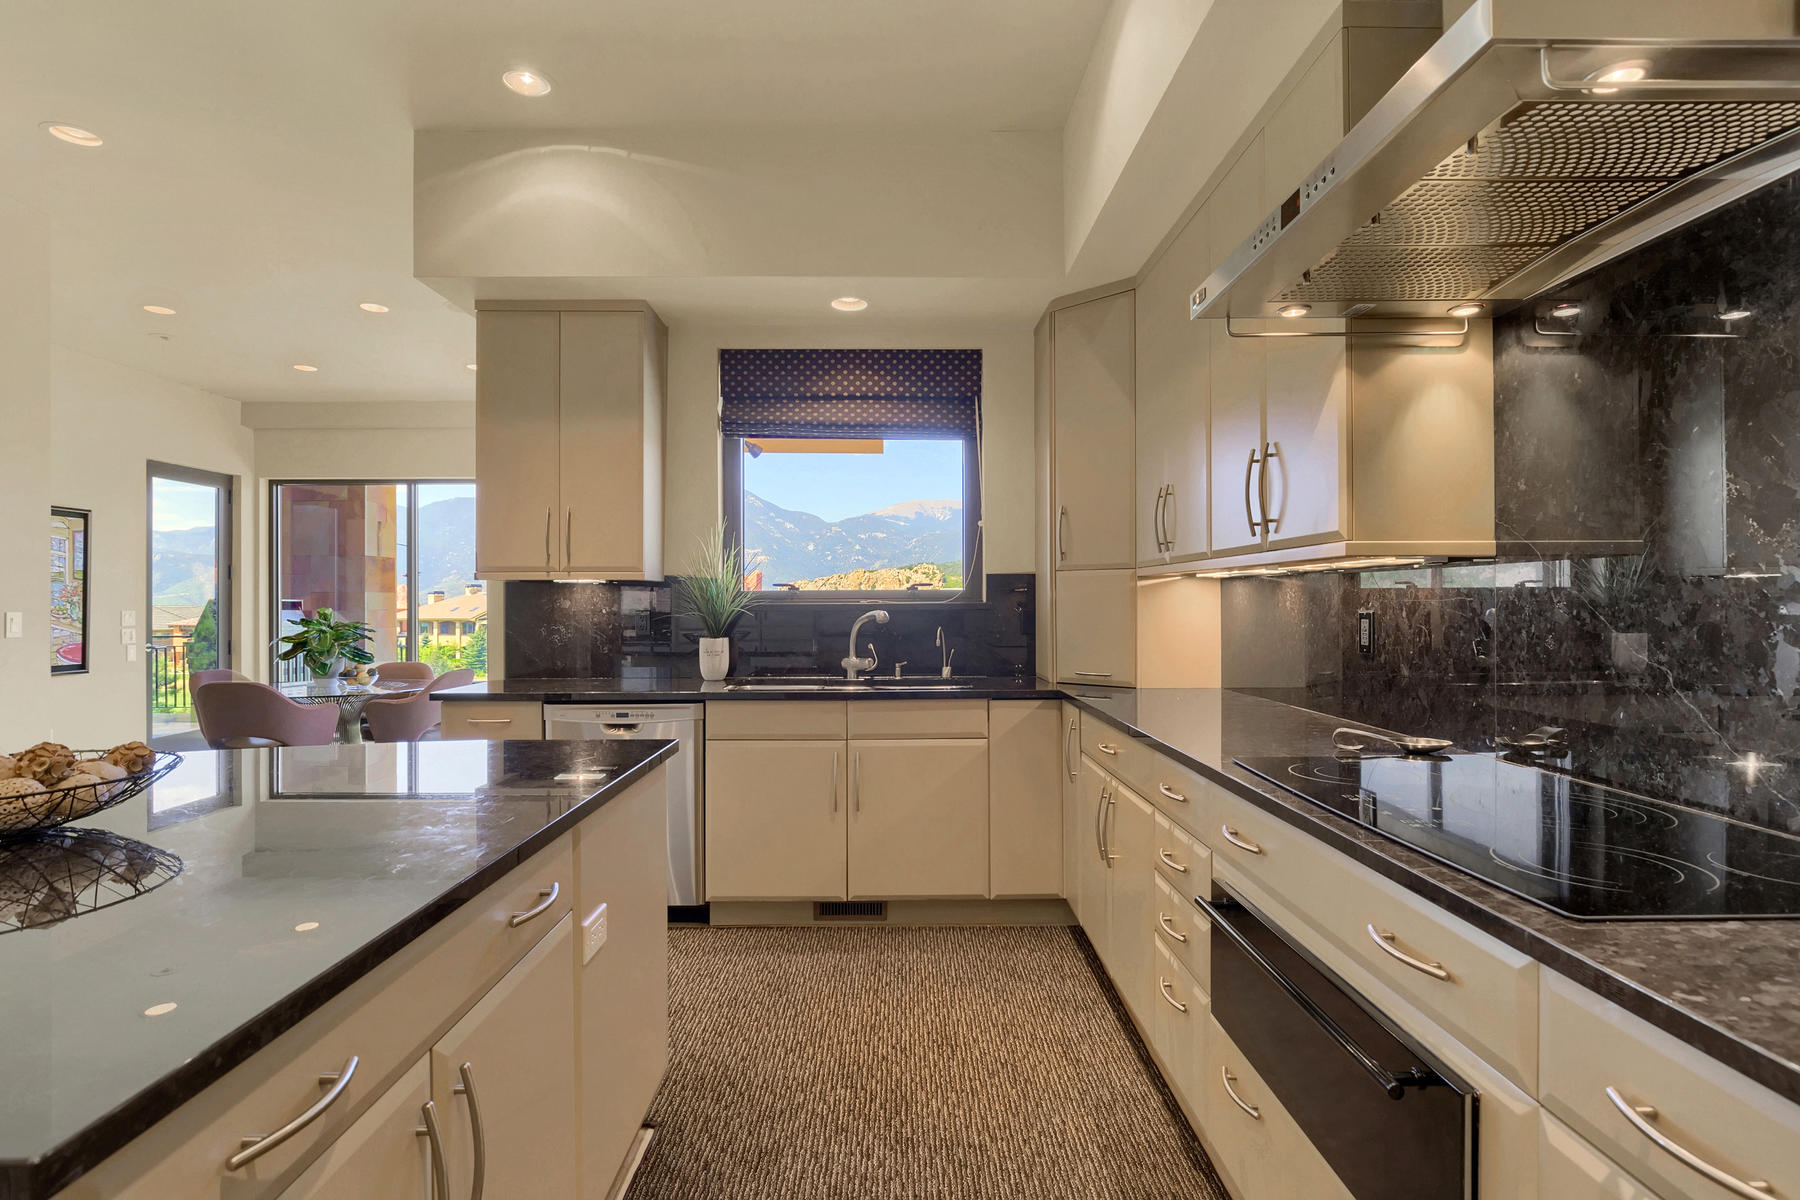 Additional photo for property listing at This custom contemporary masterpiece must be experienced in person 3724 Camelrock Vw Colorado Springs, Colorado 80904 United States